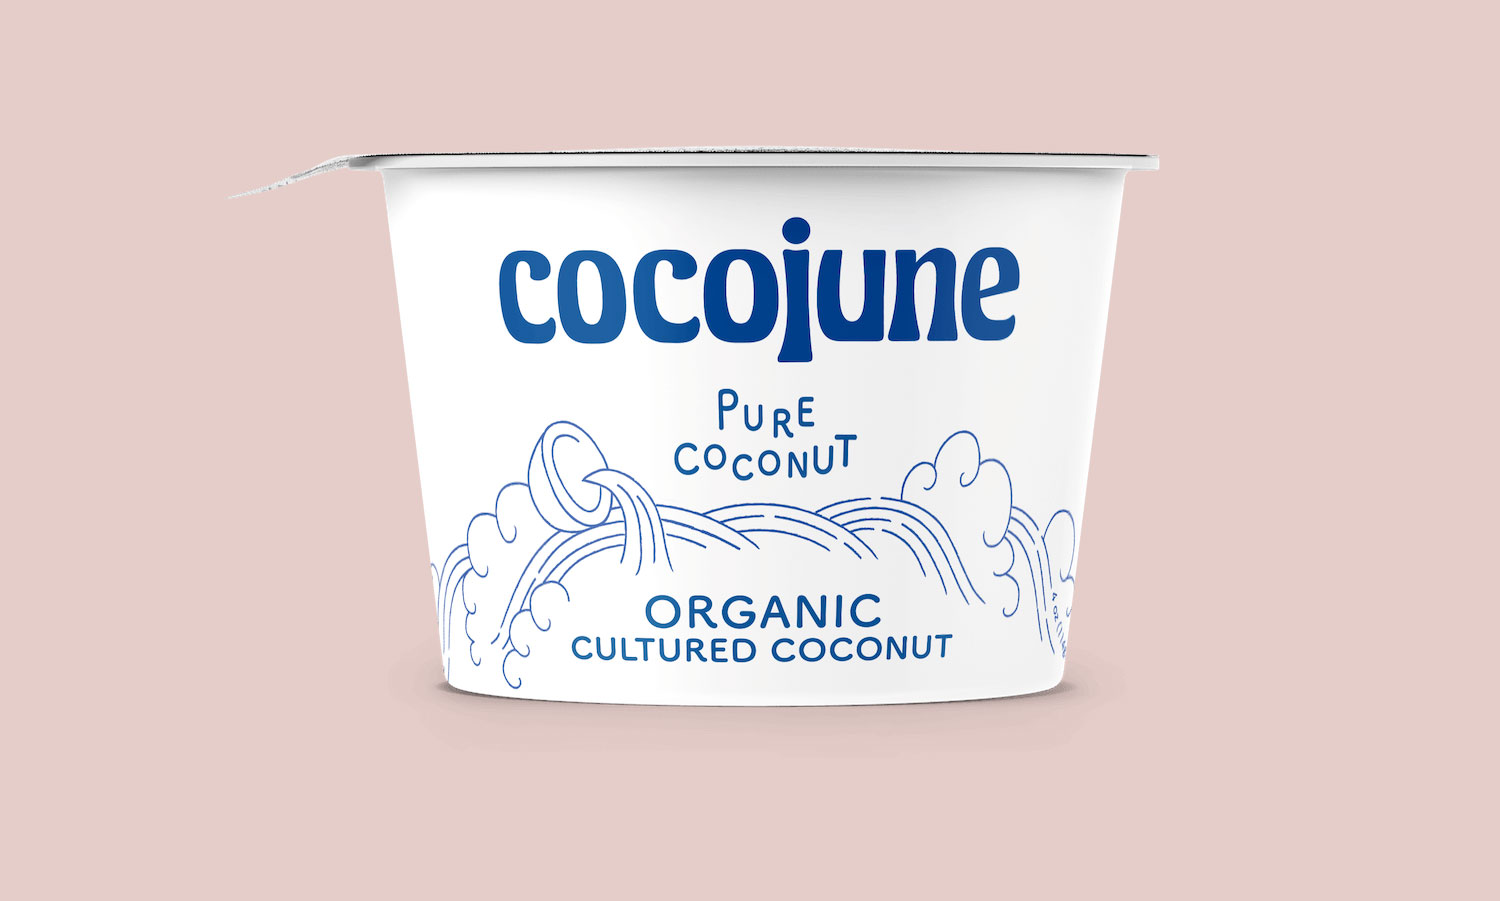 CocoJune Organic Cultured Coconut